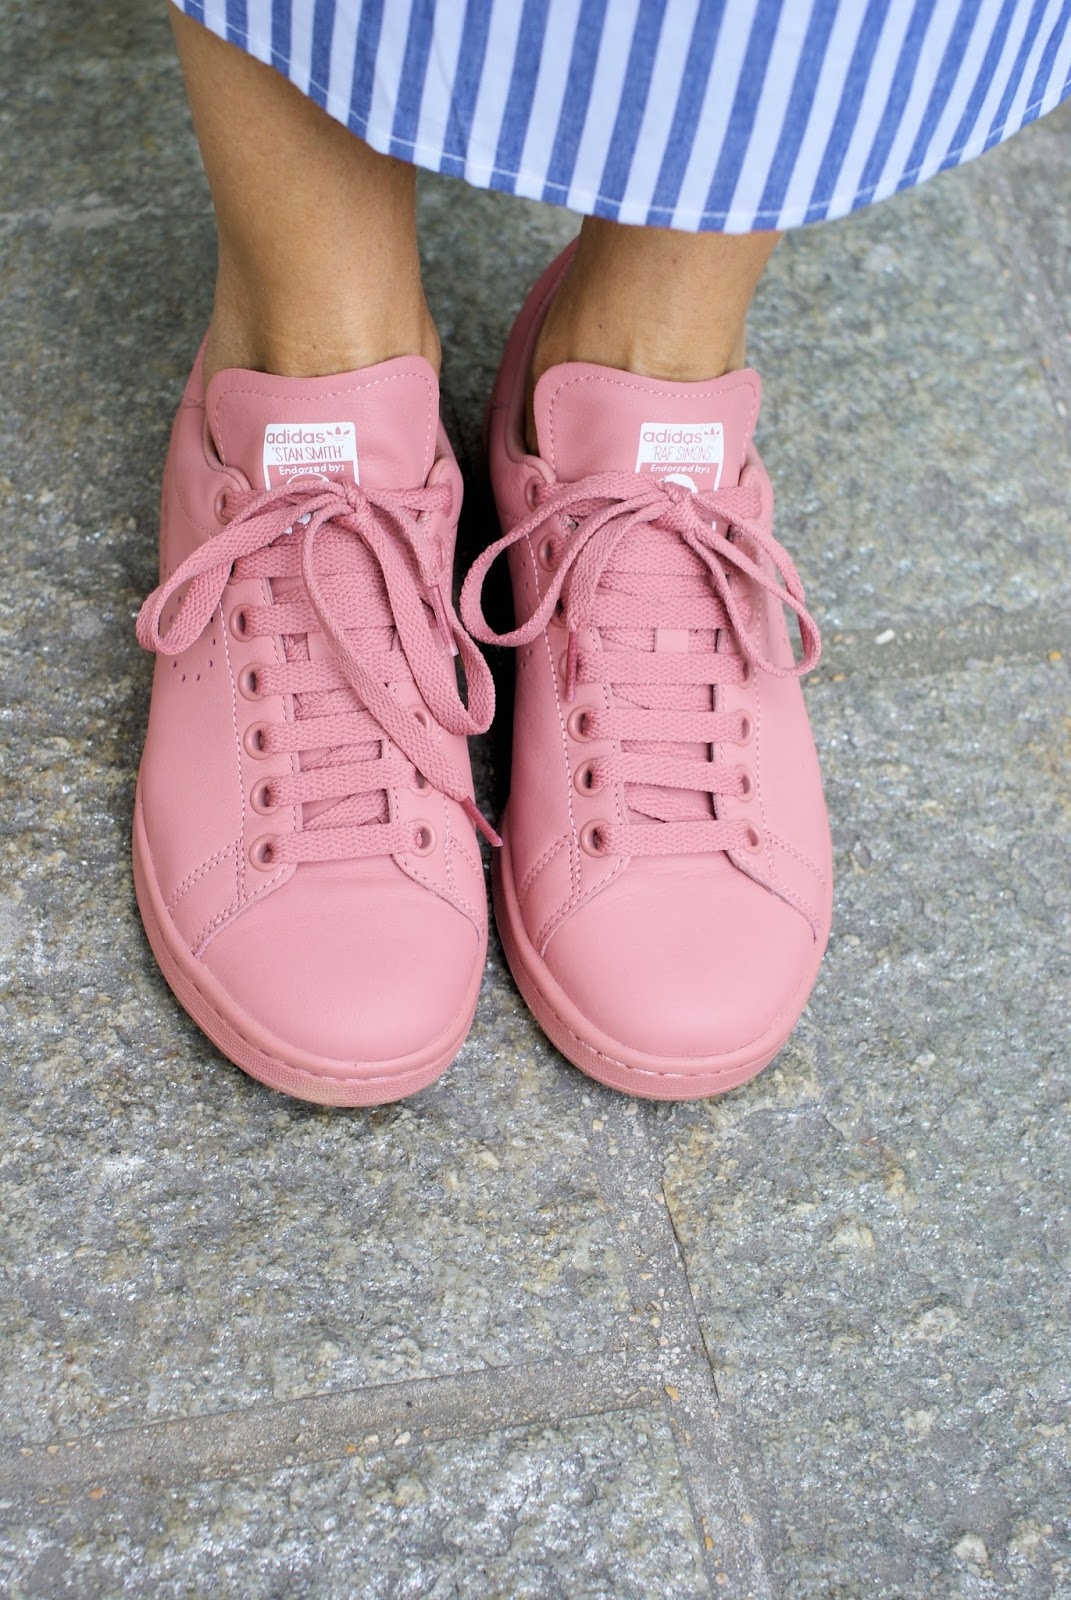 Pink Adidas Stan Smith sneakers by Raf Simons on Fashion and Cookies fashion blog, fashion blogger style